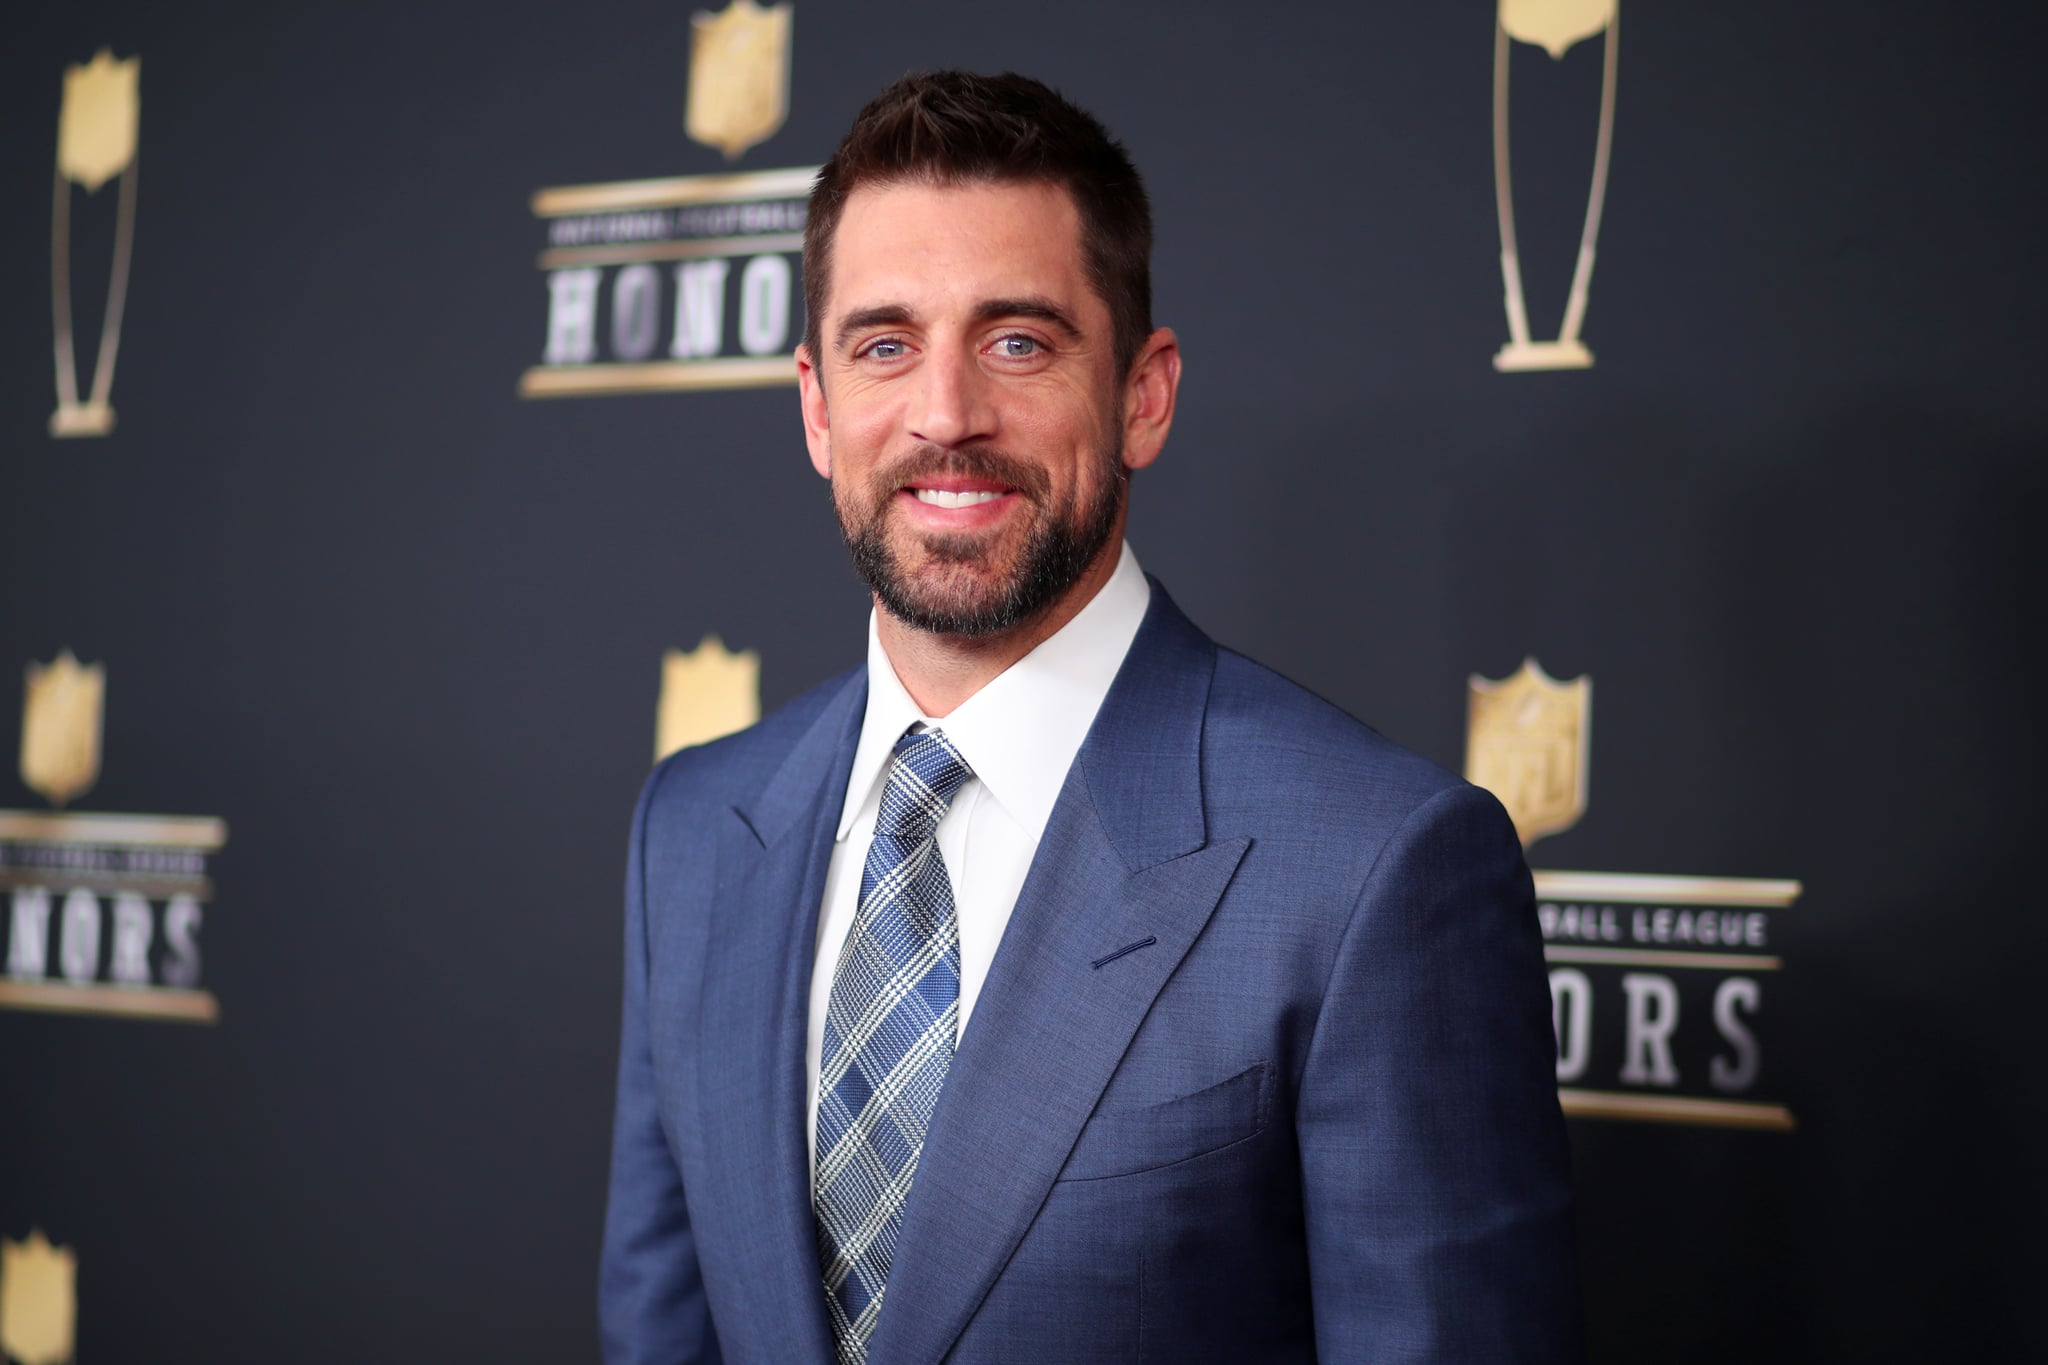 MINNEAPOLIS, MN - FEBRUARY 03:  NFL Player Aaron Rodgers attends the NFL Honors at University of Minnesota on February 3, 2018 in Minneapolis, Minnesota.  (Photo by Christopher Polk/Getty Images)